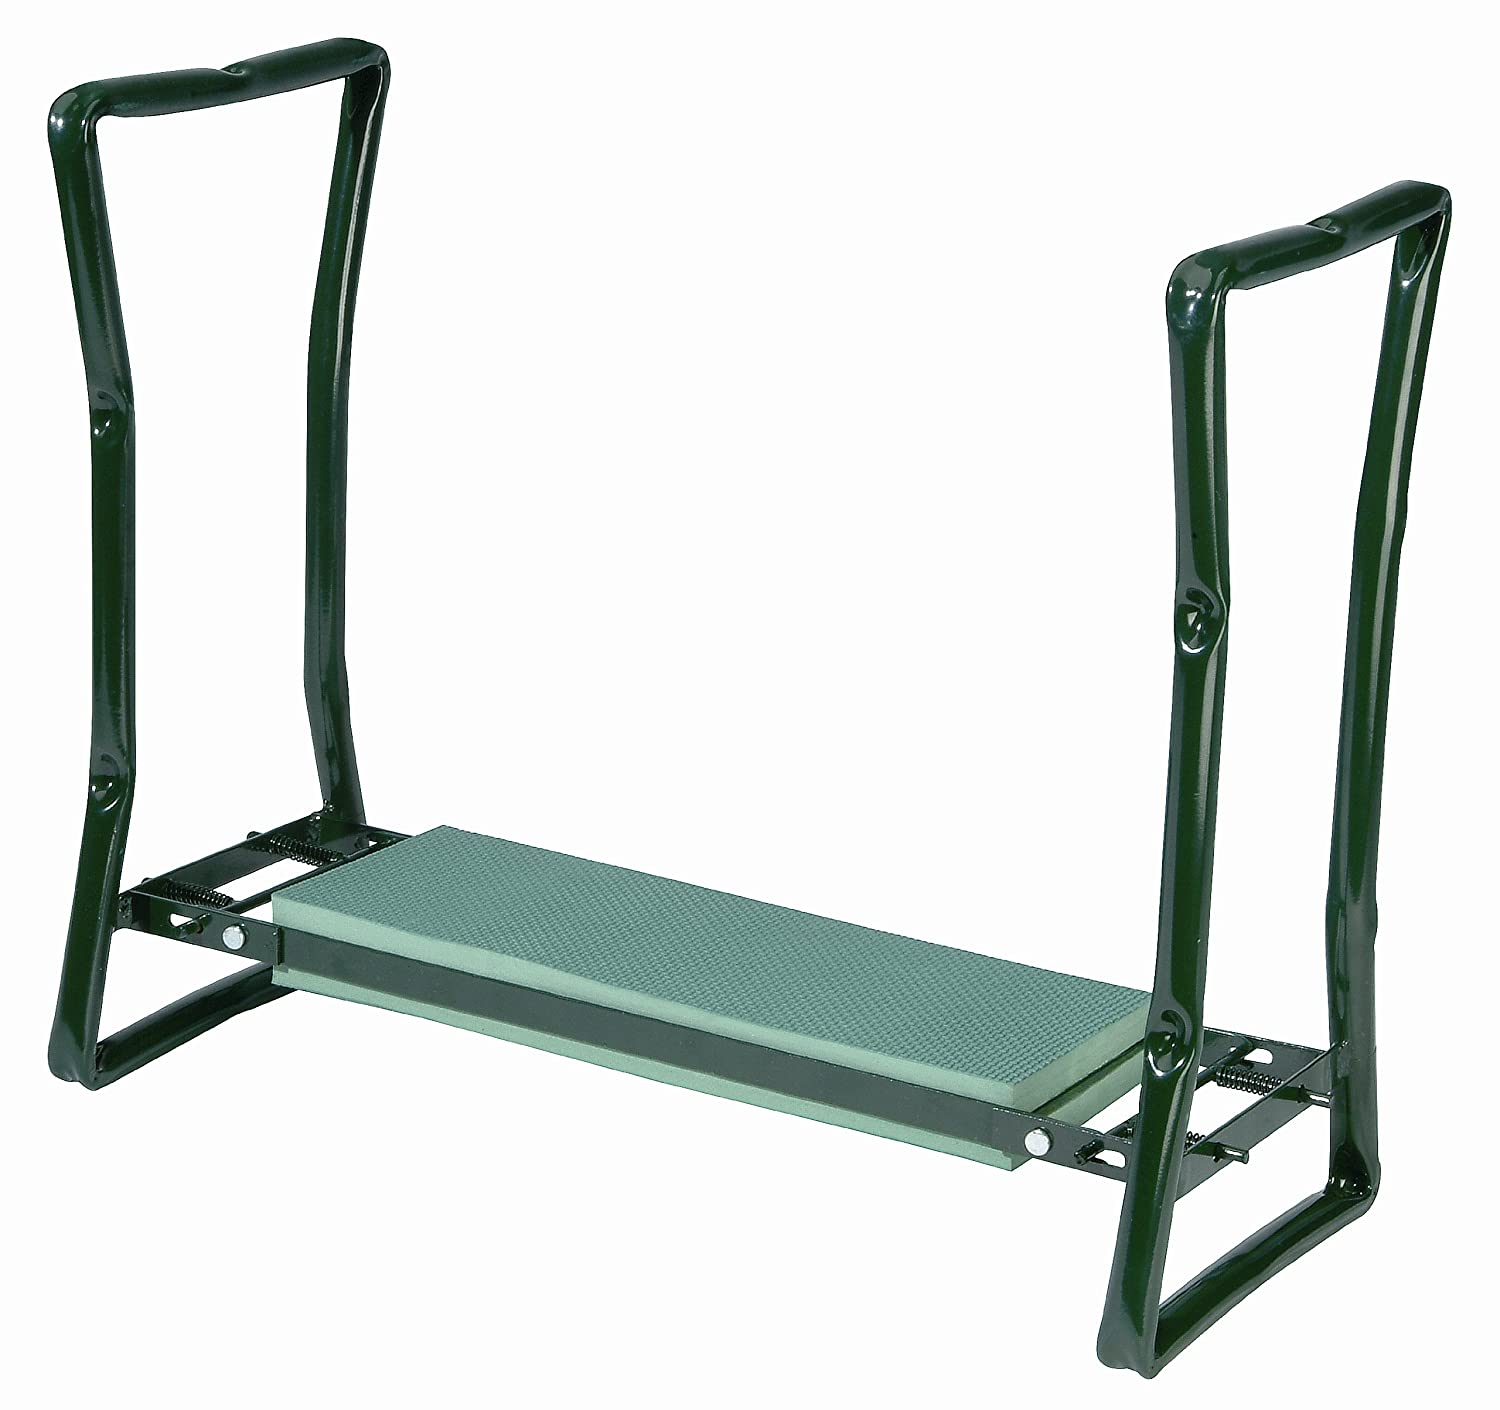 Bosmere N470 Foldable Kneeler and Garden Seat